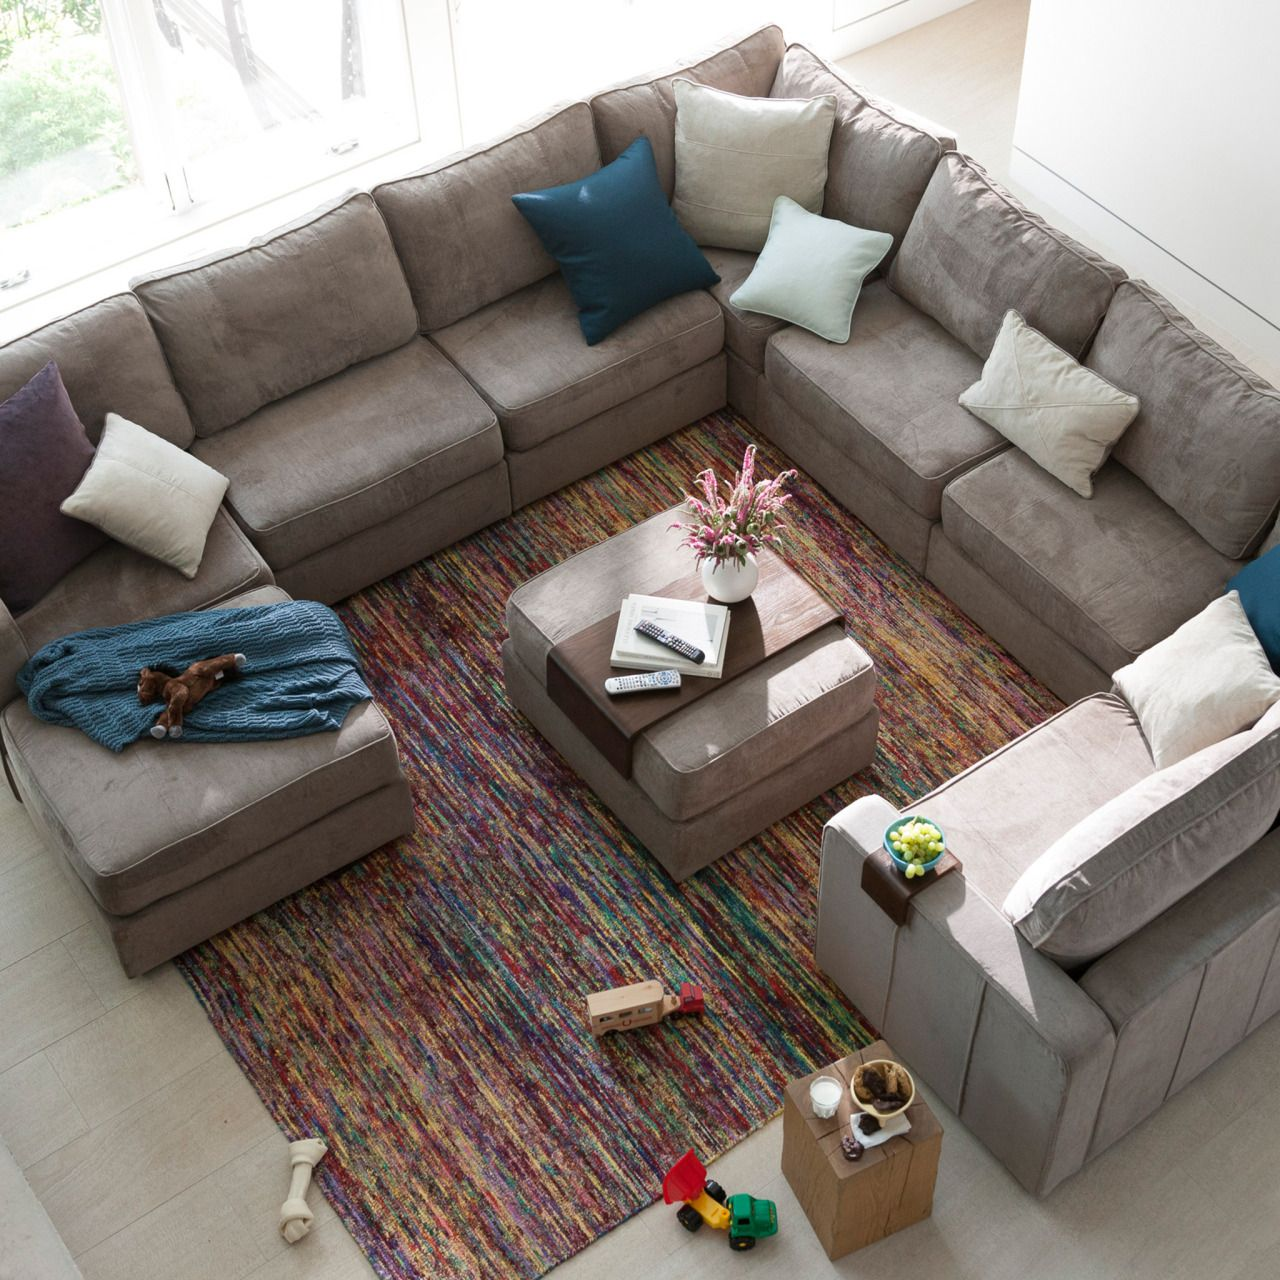 Stupendous Lovesac We Make Sactionals The Most Adaptable Couch In Unemploymentrelief Wooden Chair Designs For Living Room Unemploymentrelieforg